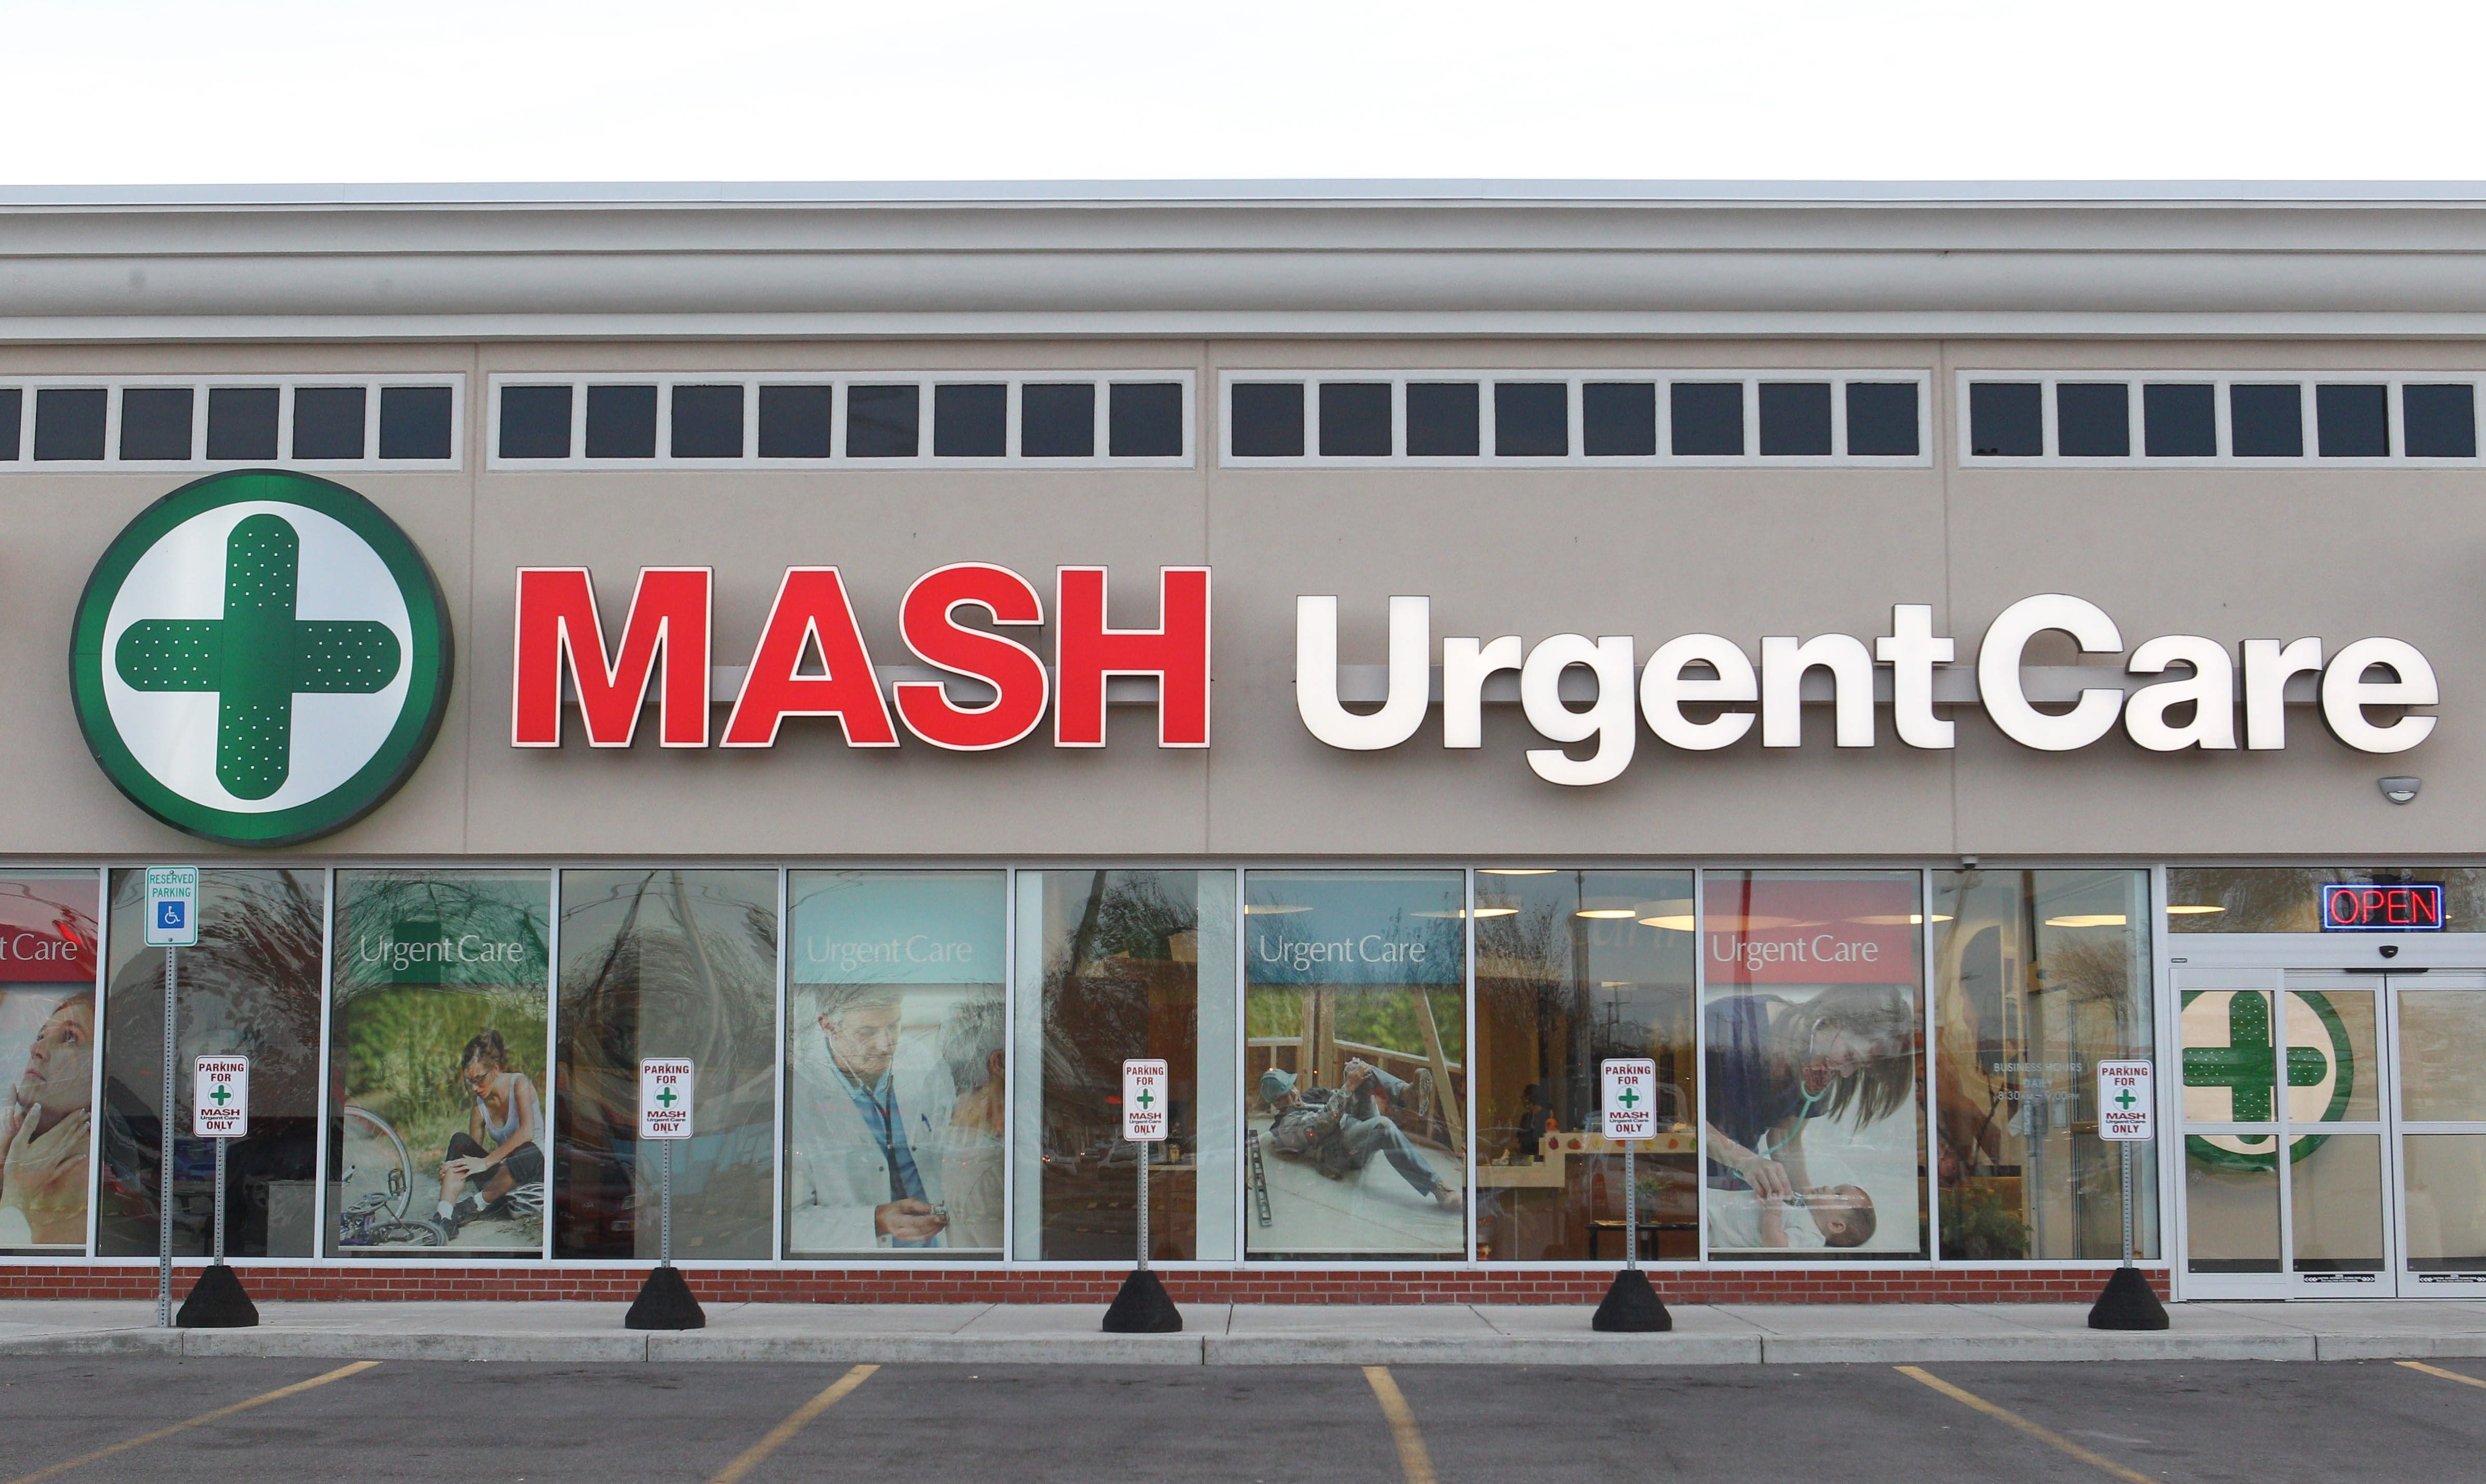 MASH Urgent Care, which has a unit on Sheridan Drive in the Town of Tonawanda, is one three major players.